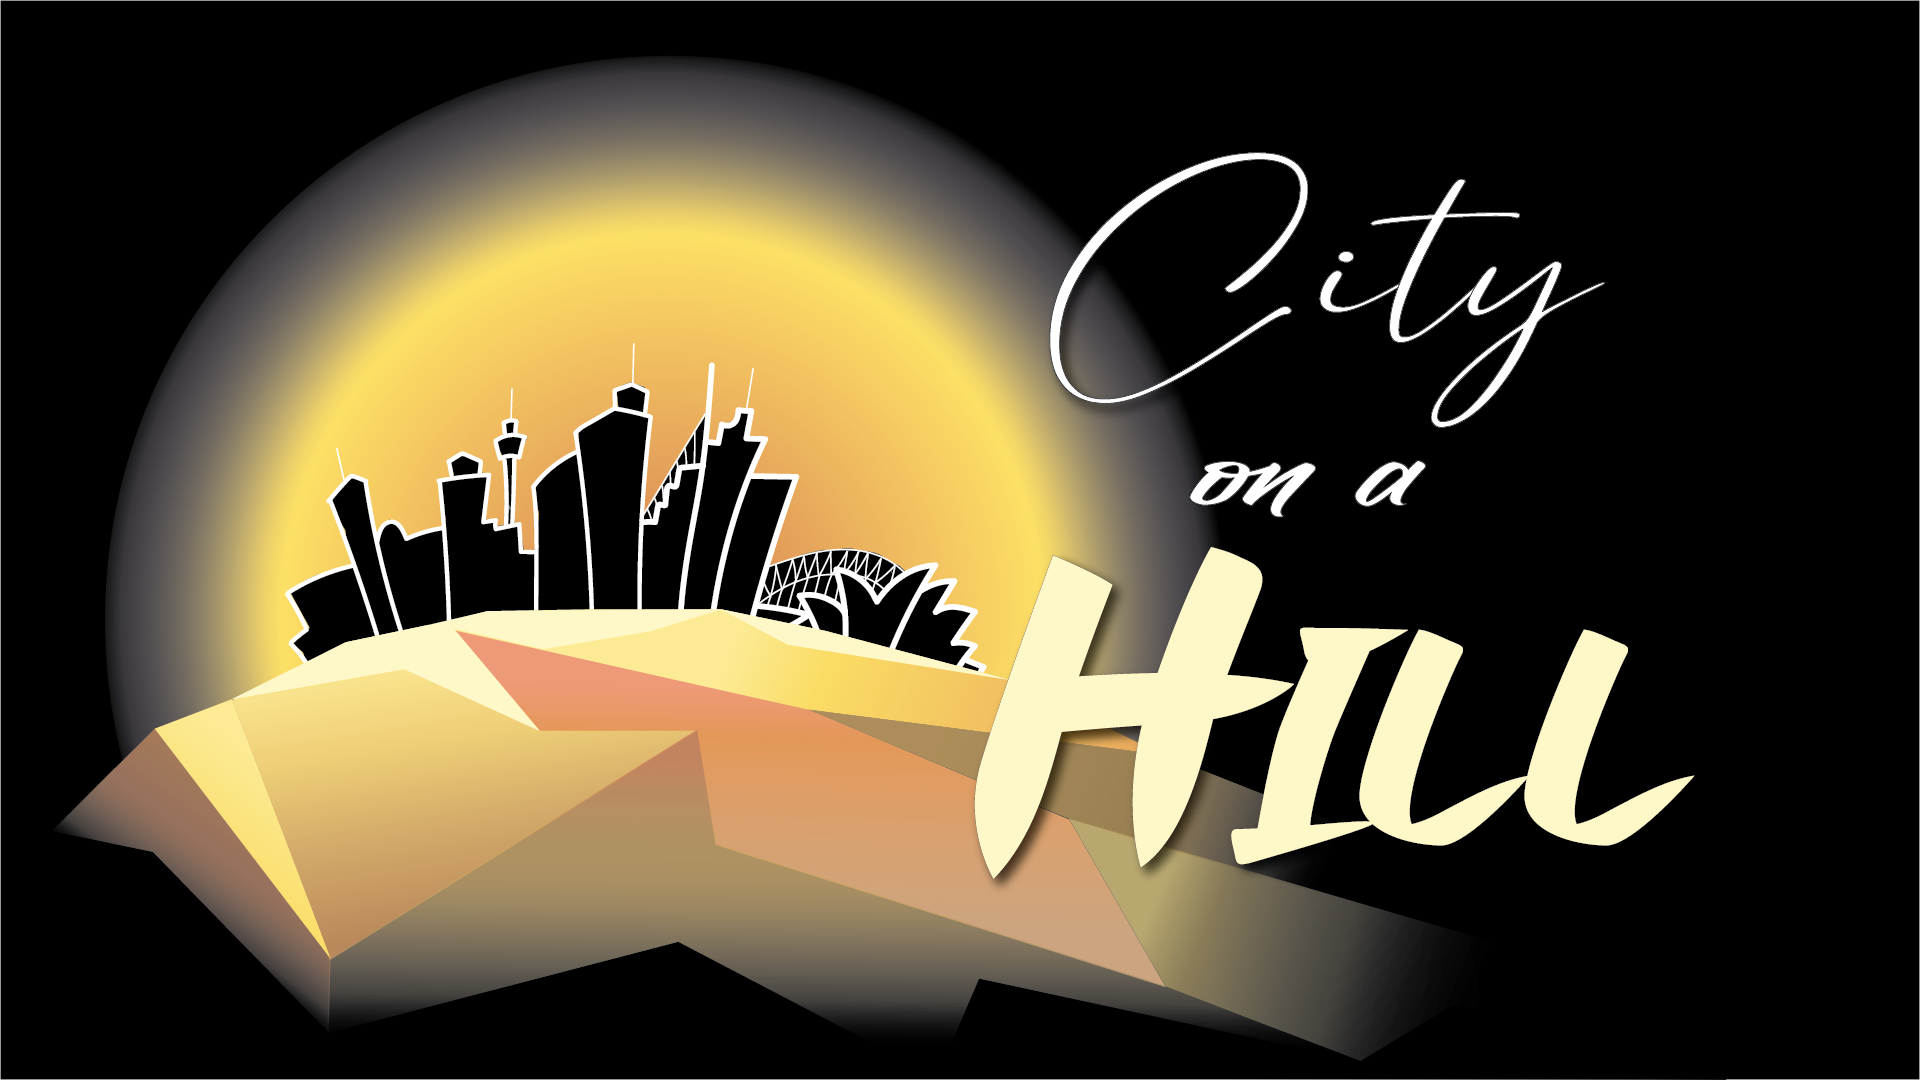 City on Hill Theme 2021 image